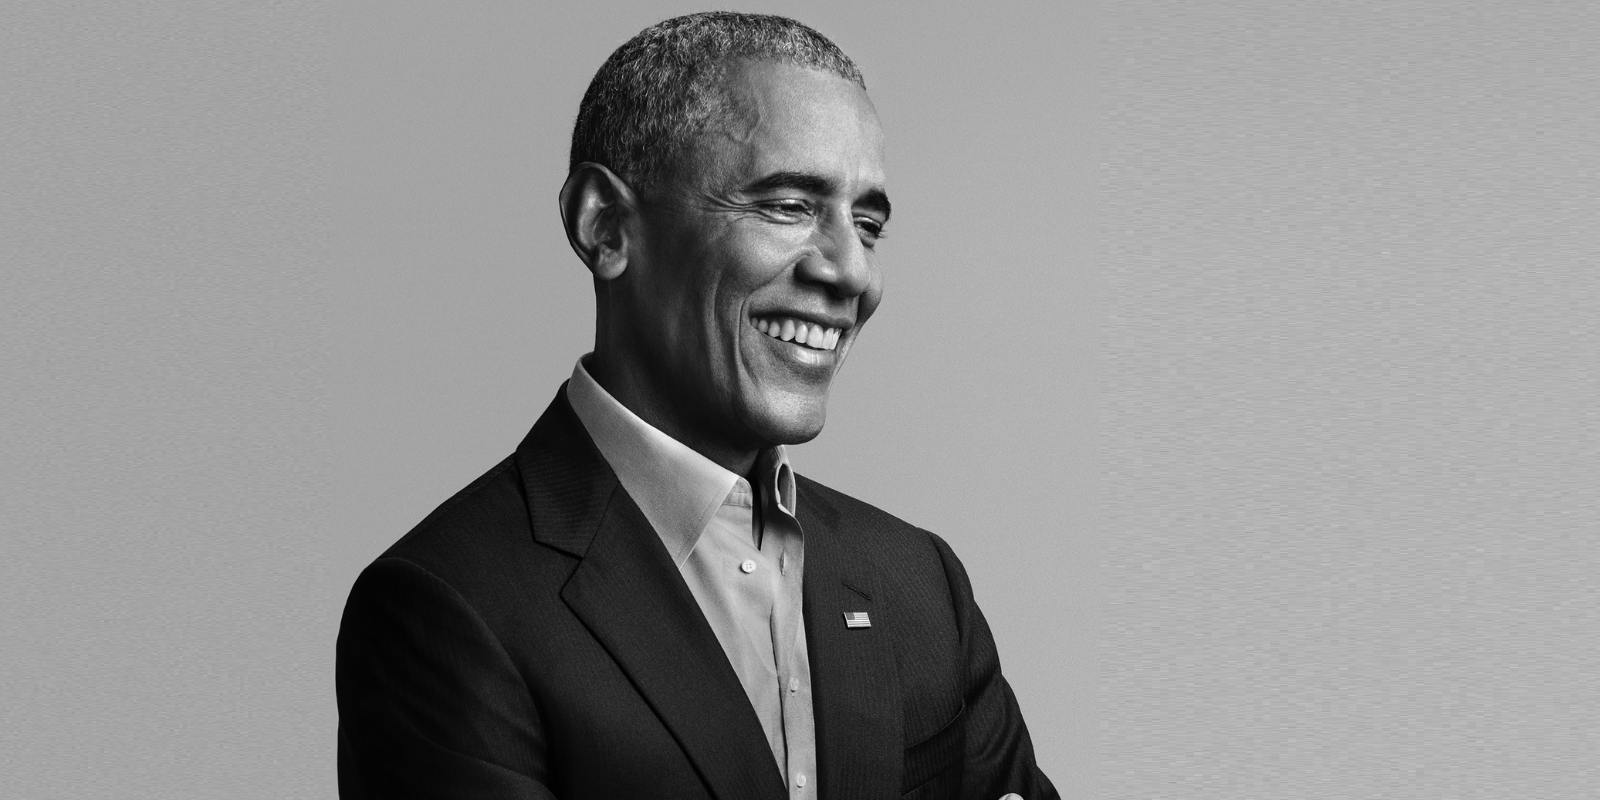 Barack Obama's 'A Promised Land' is mediocre. What does that say about the literary establishment?